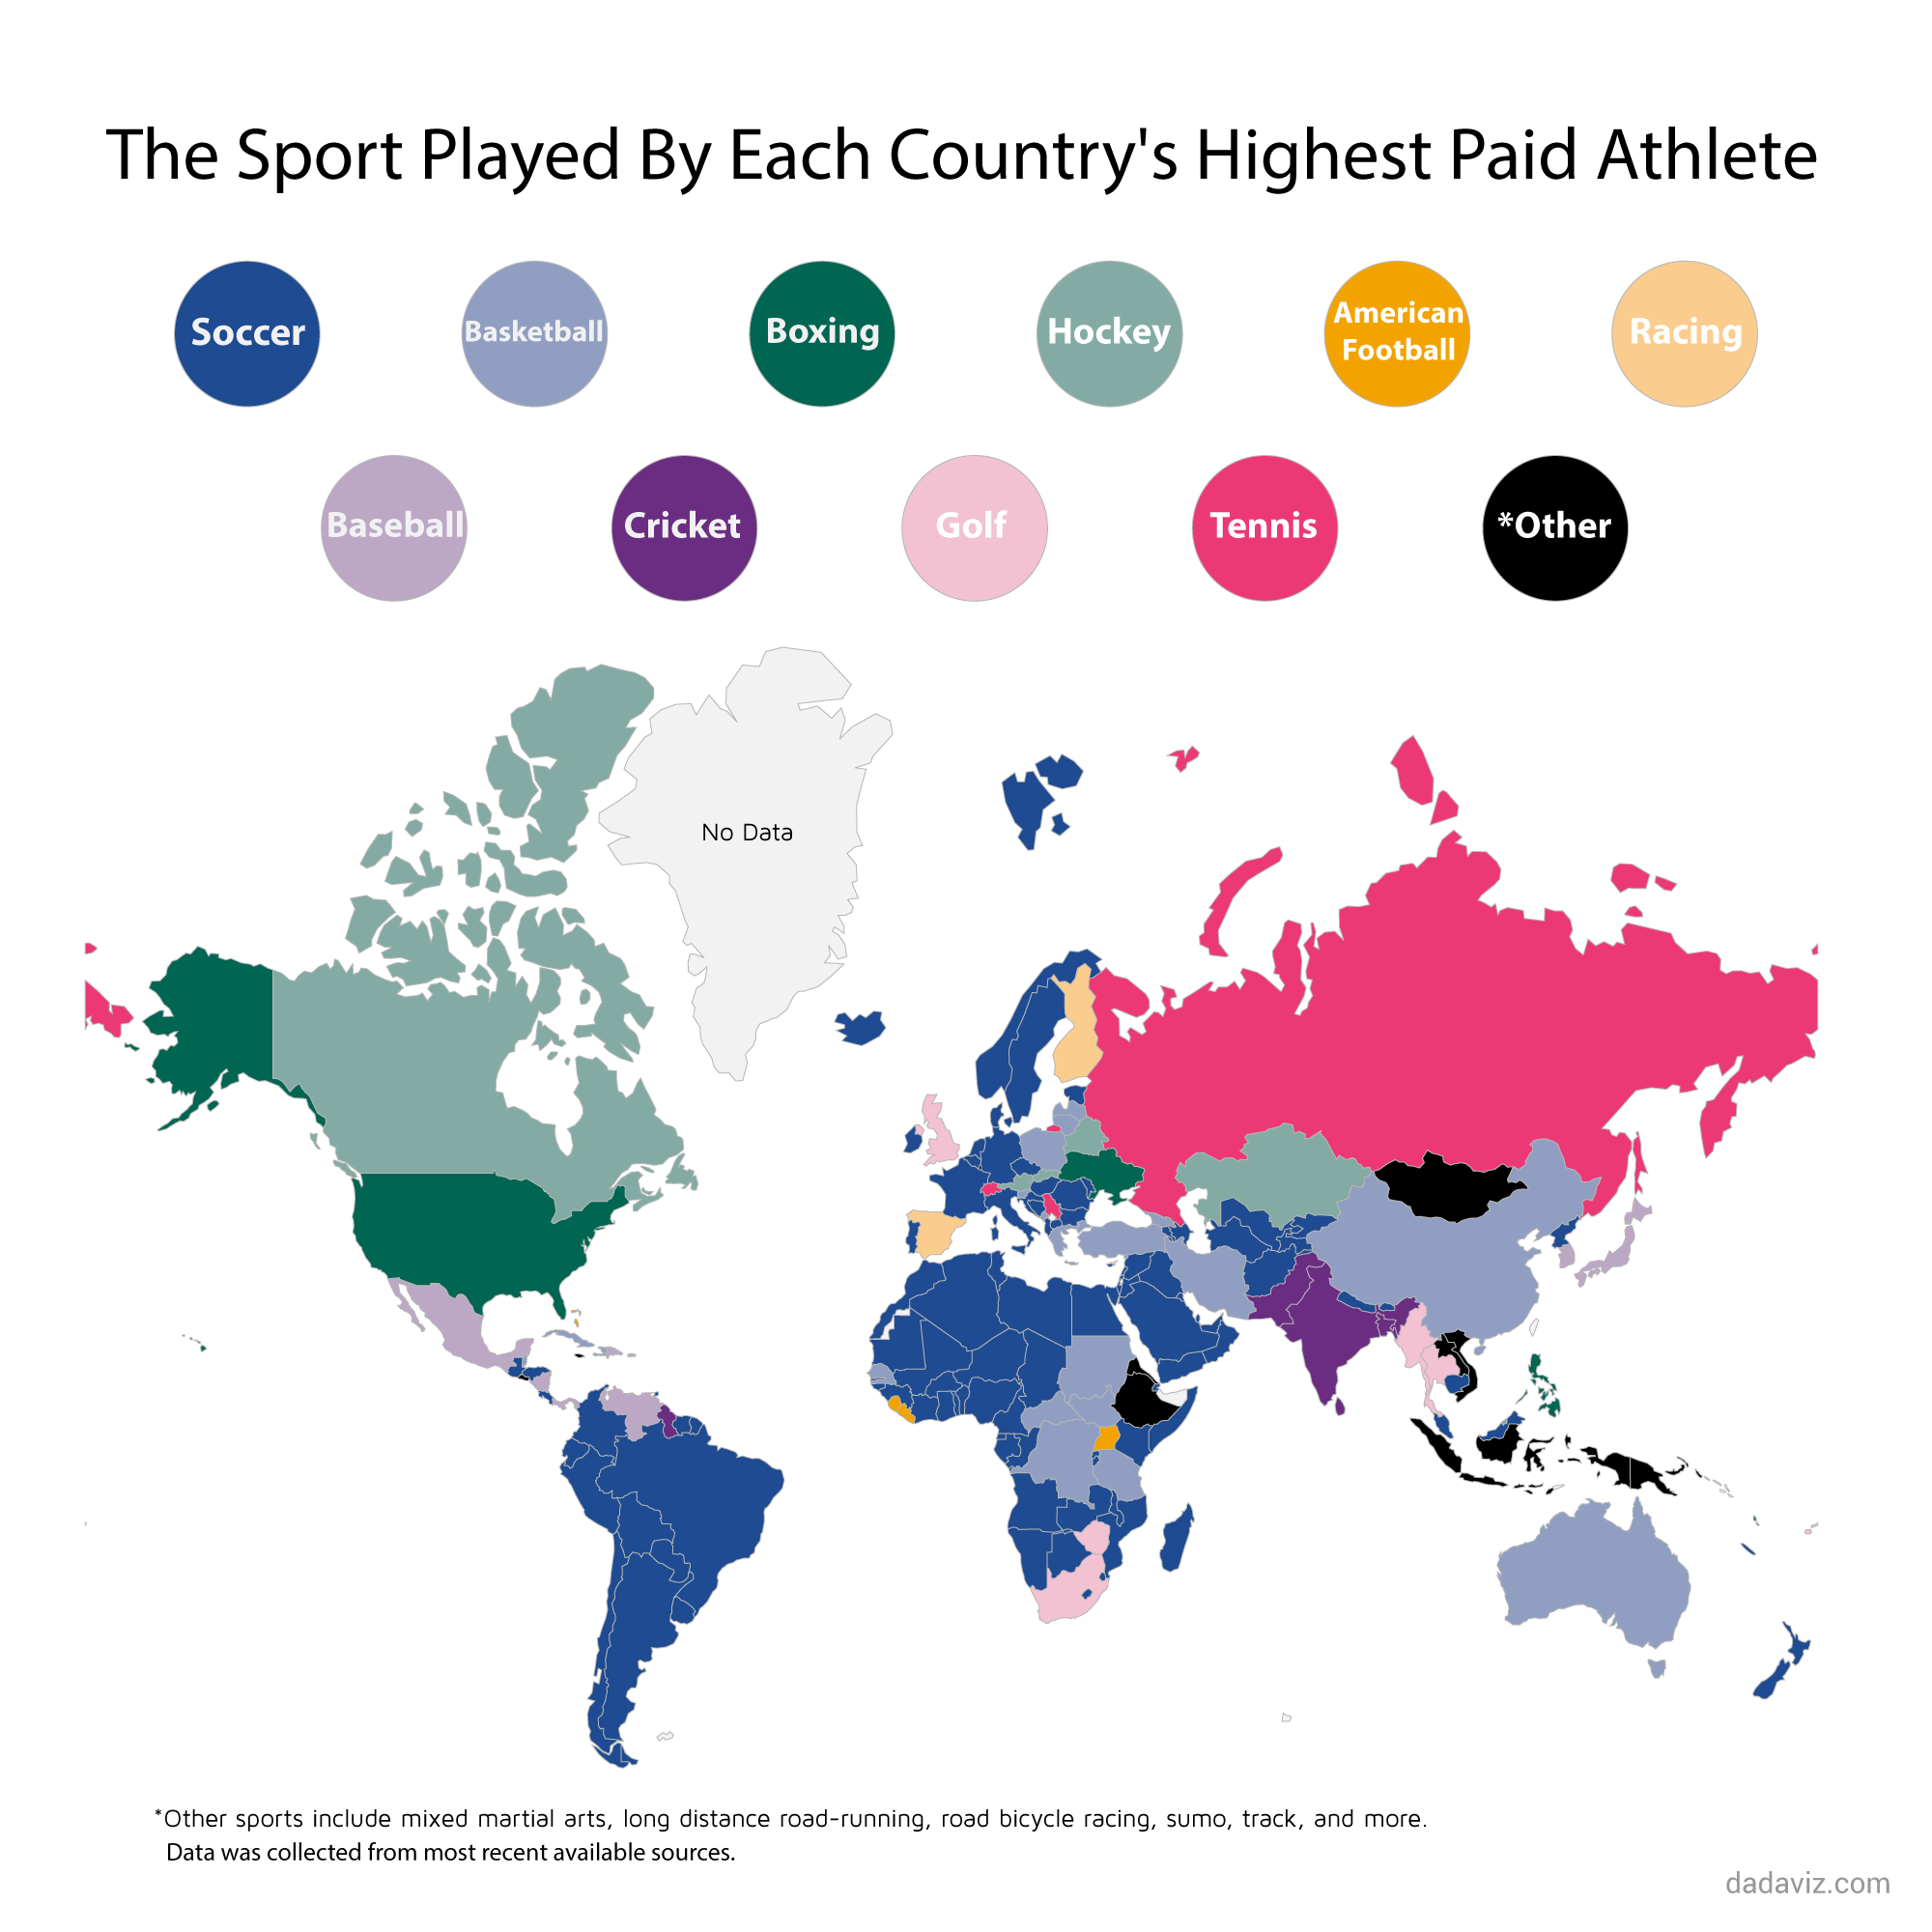 what sport does the highest paid athlete in your c 1440075030.37 6680218